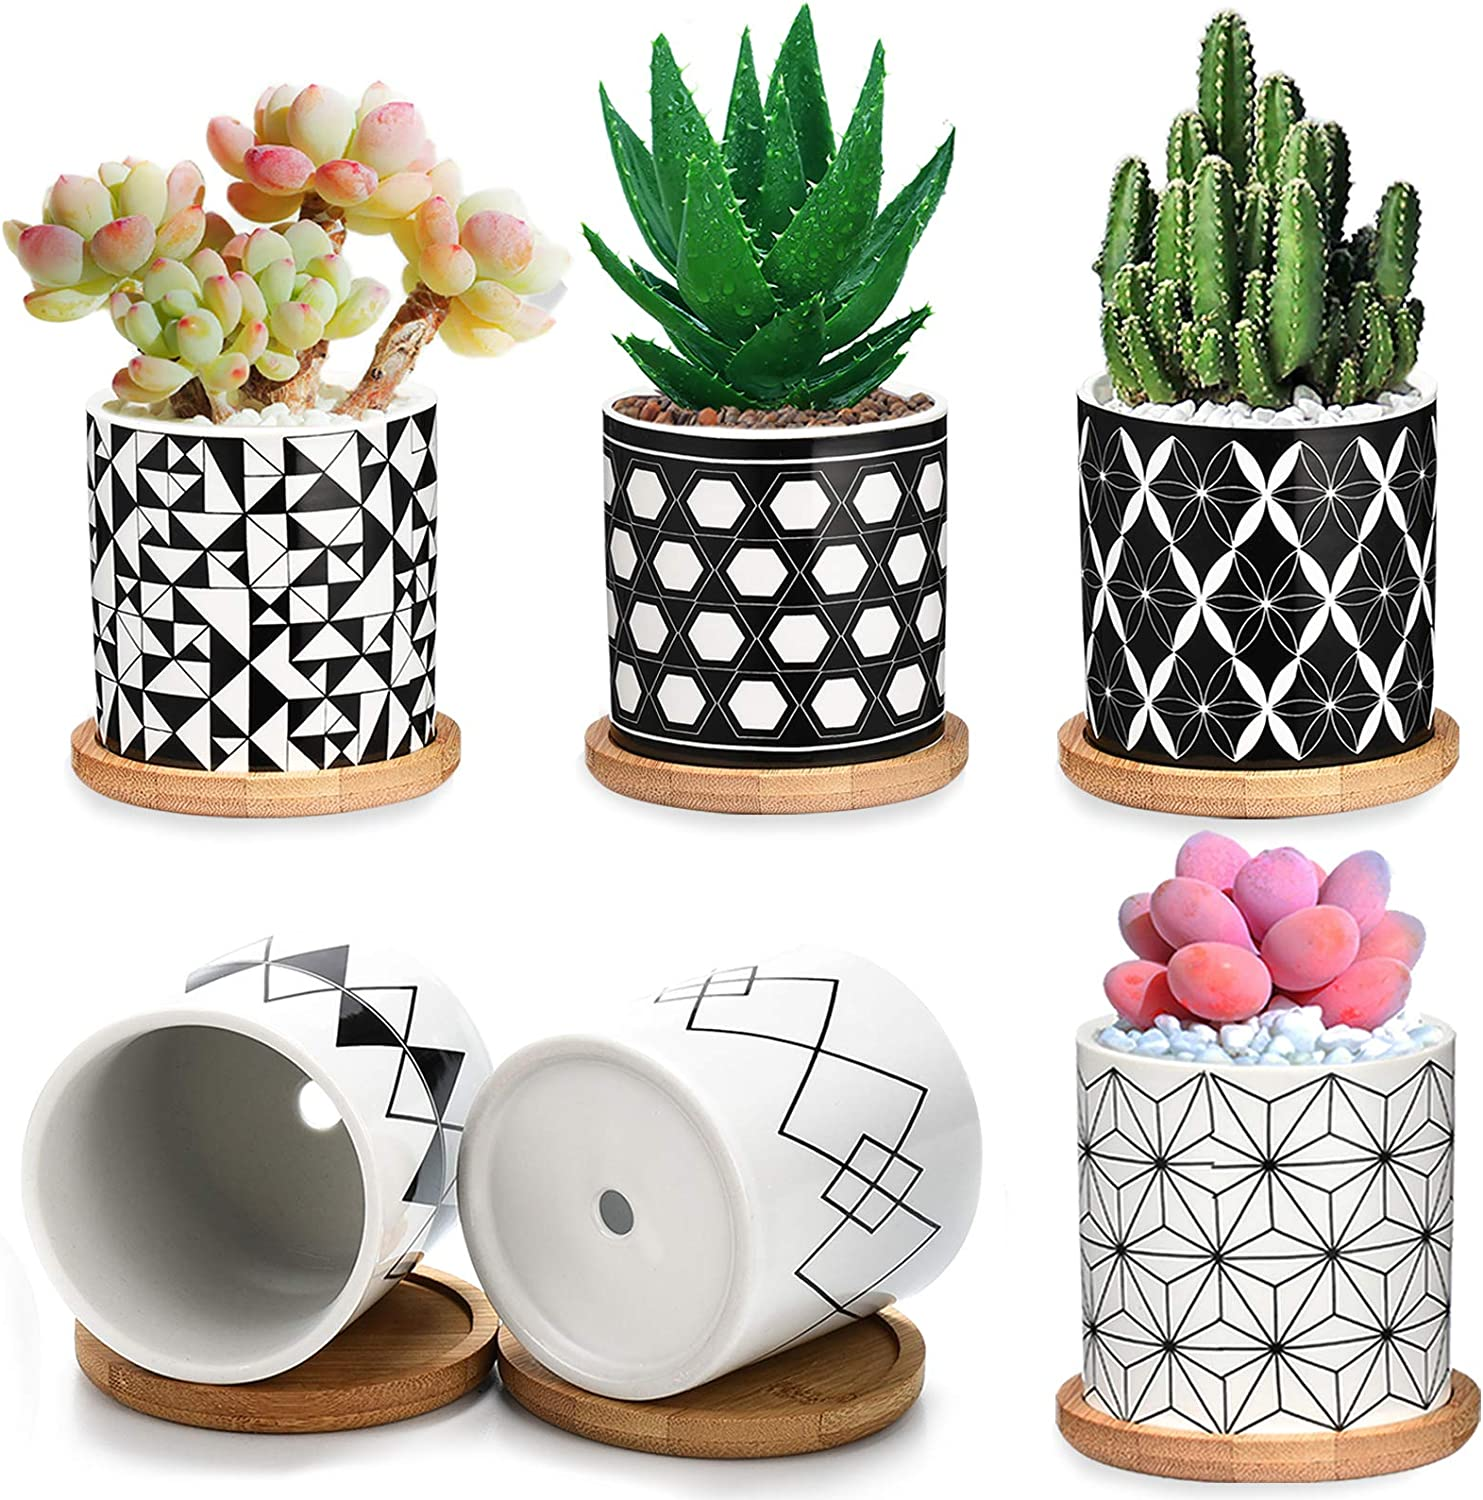 Succulent Pots 6 Pack,3 Inch Ceramic Planter with Drainage and Bamboo Tray, Geometric Patterns Small Plant Pots Decor for Home and Office - Plants NOT Included ?2021 New Upgraded?